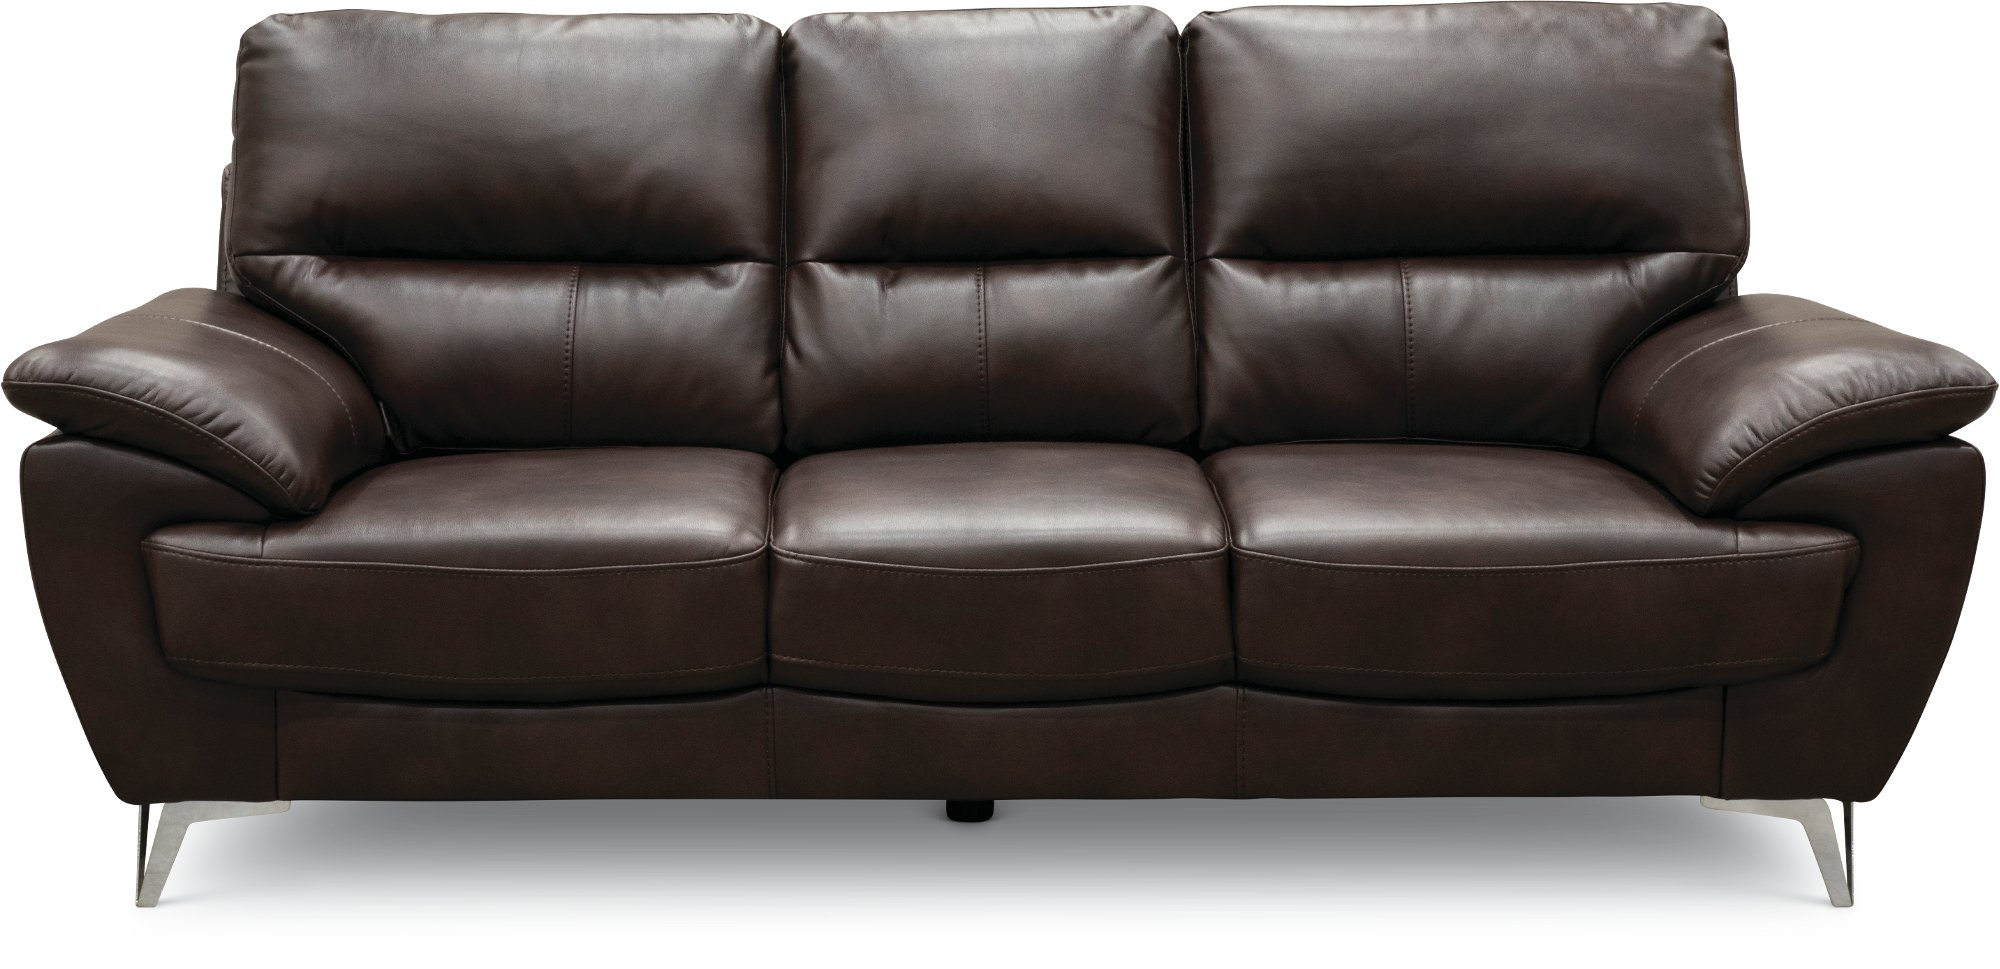 Contemporary Chocolate Brown Sofa Loveseat Set Galactica Rc Willey Furniture Store